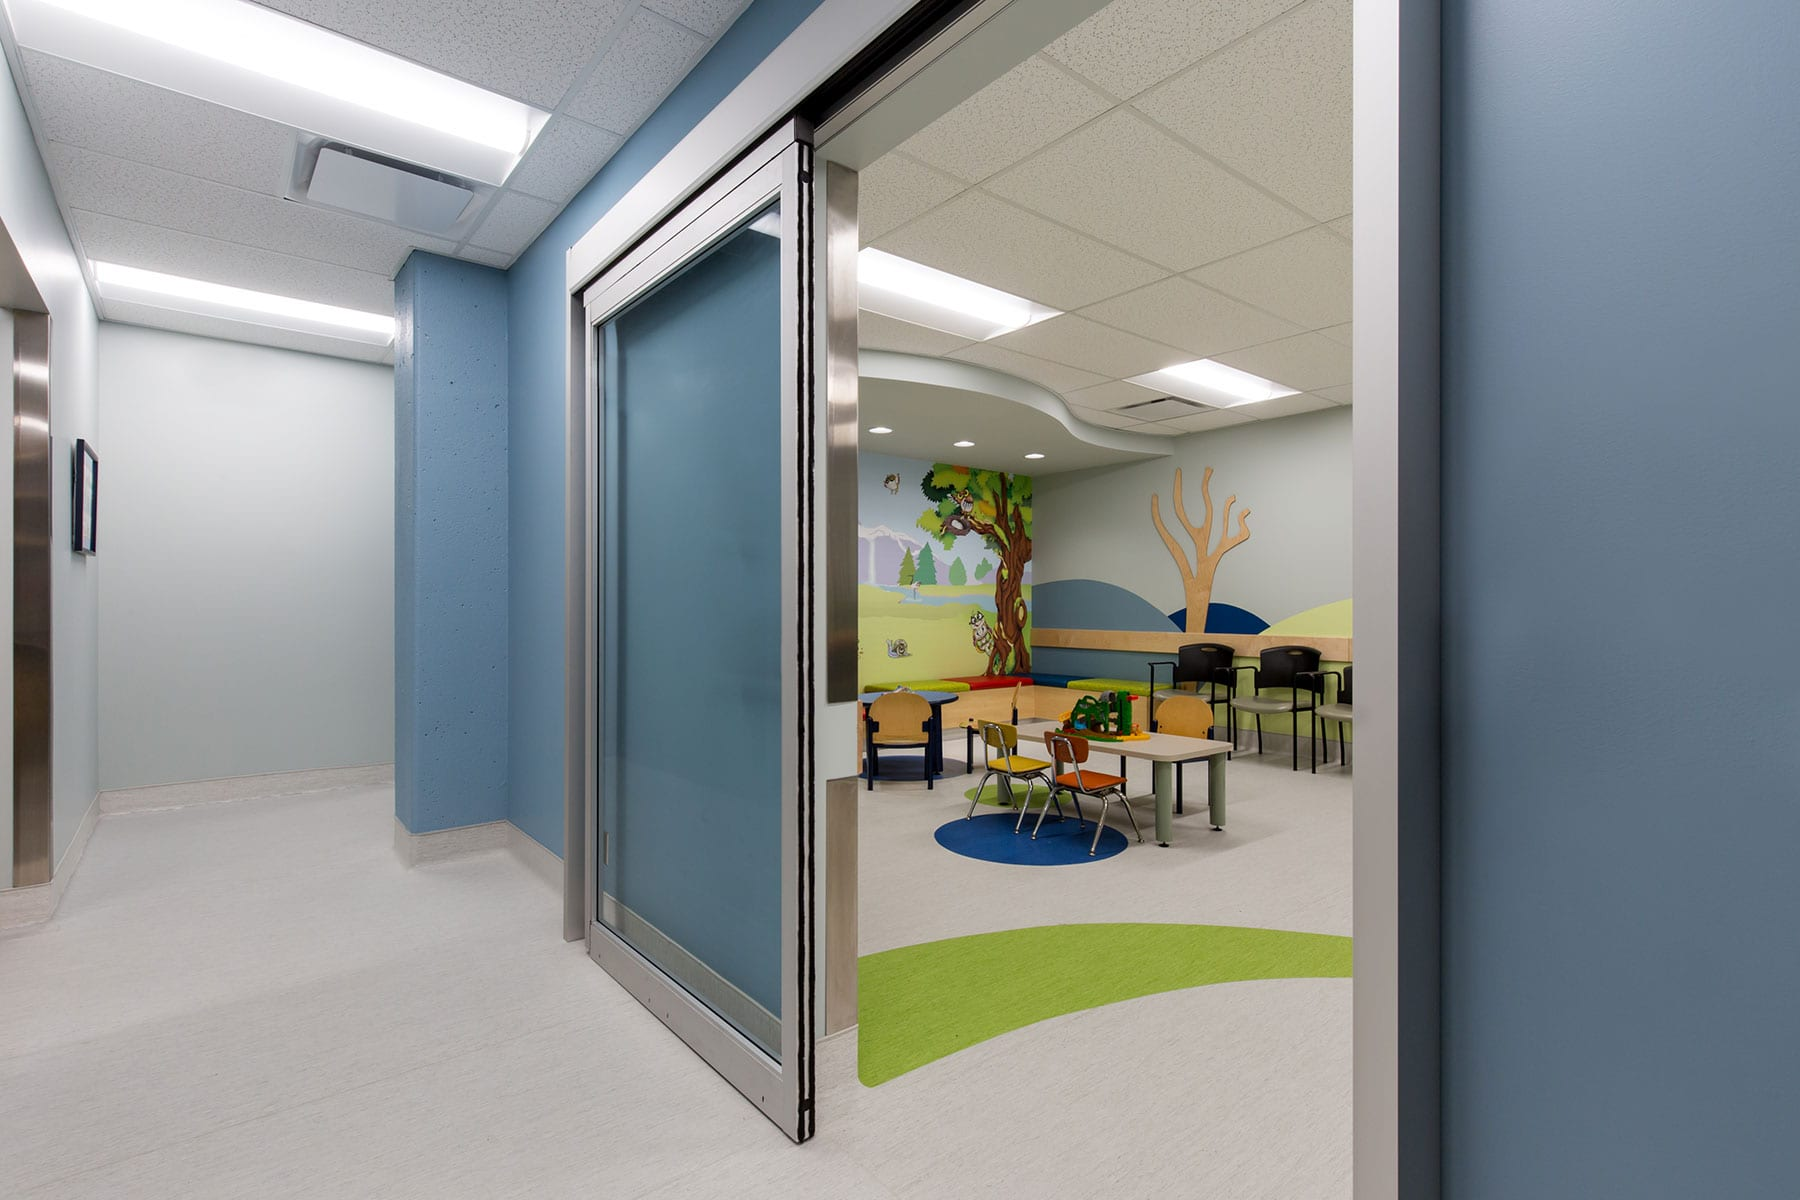 Renovation at BC children and women's hospital - waiting room